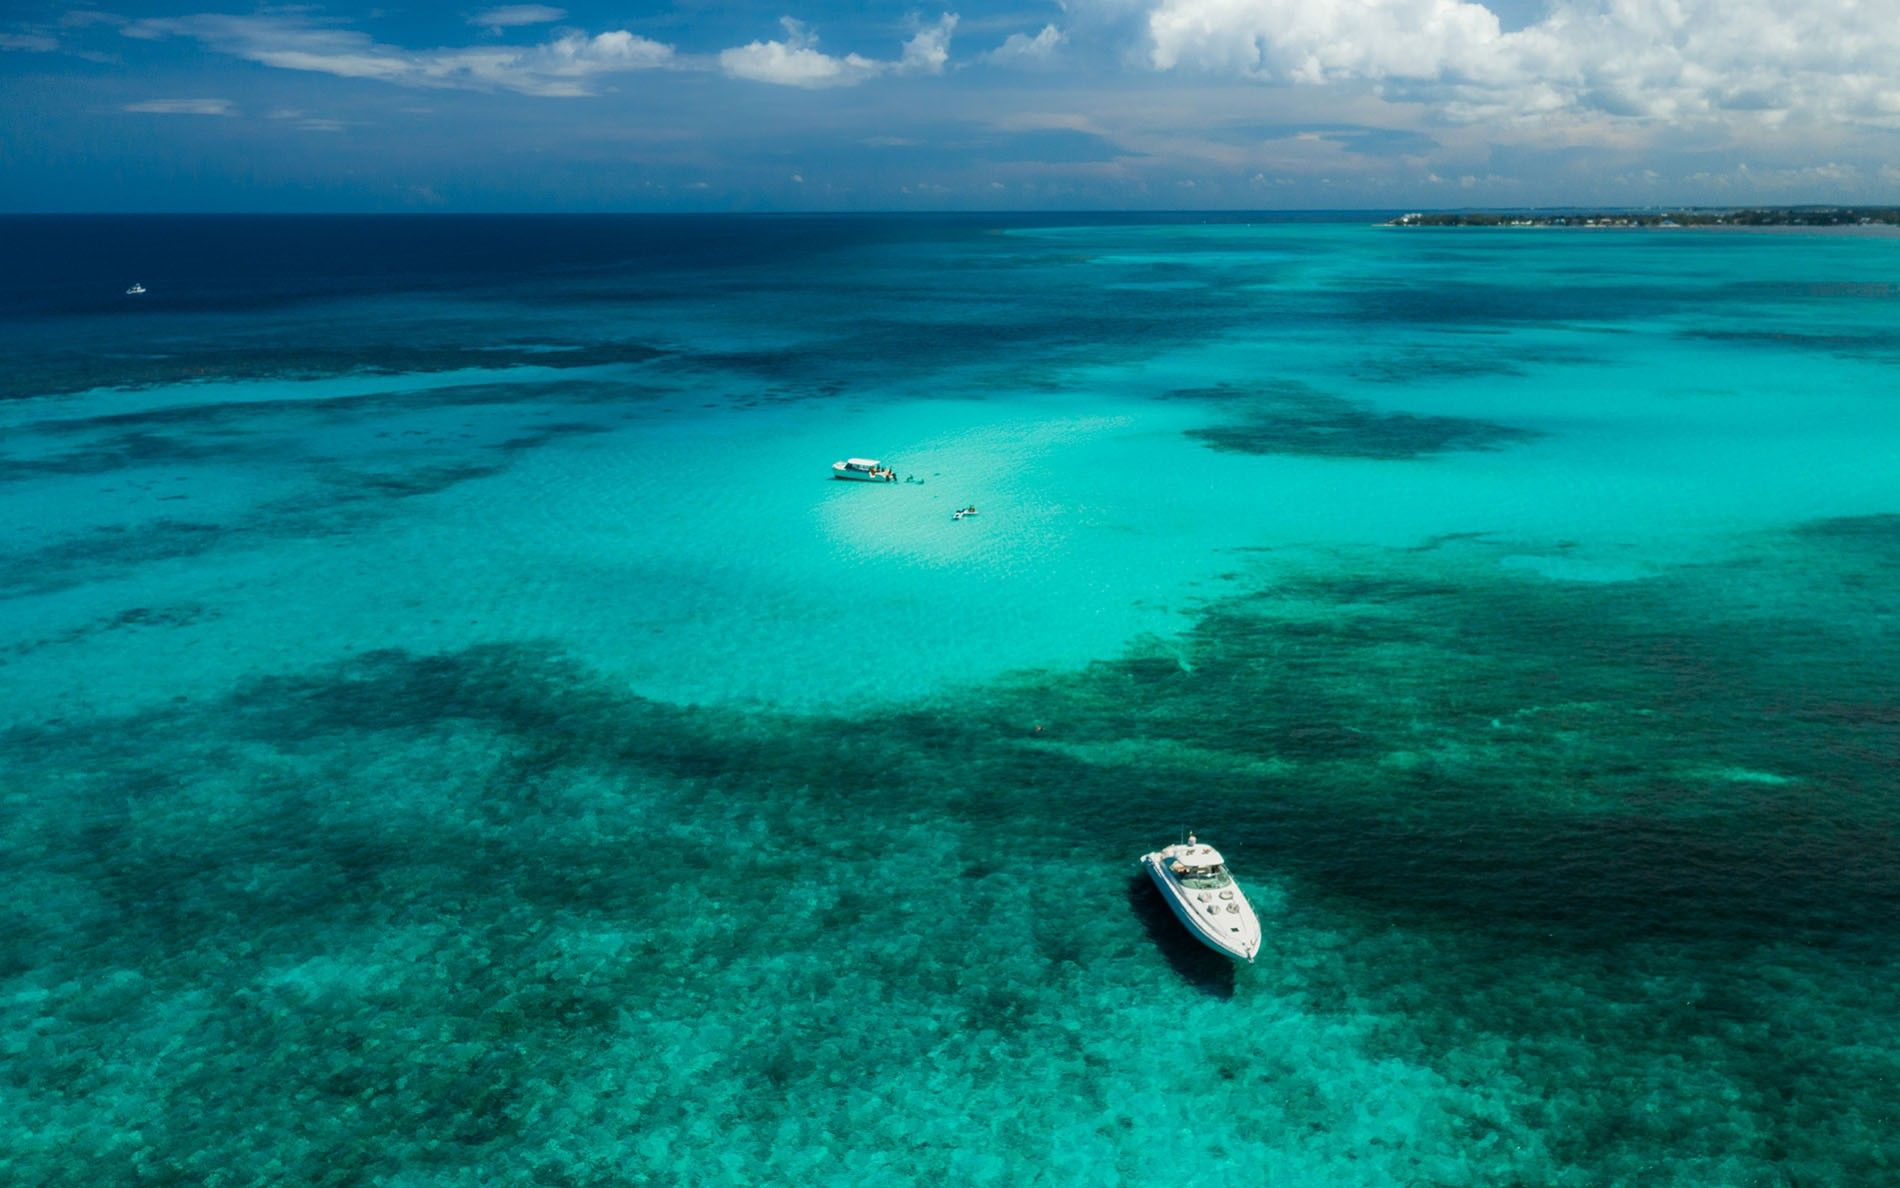 Take the plunge: how to make a difference when diving in the Cayman Islands